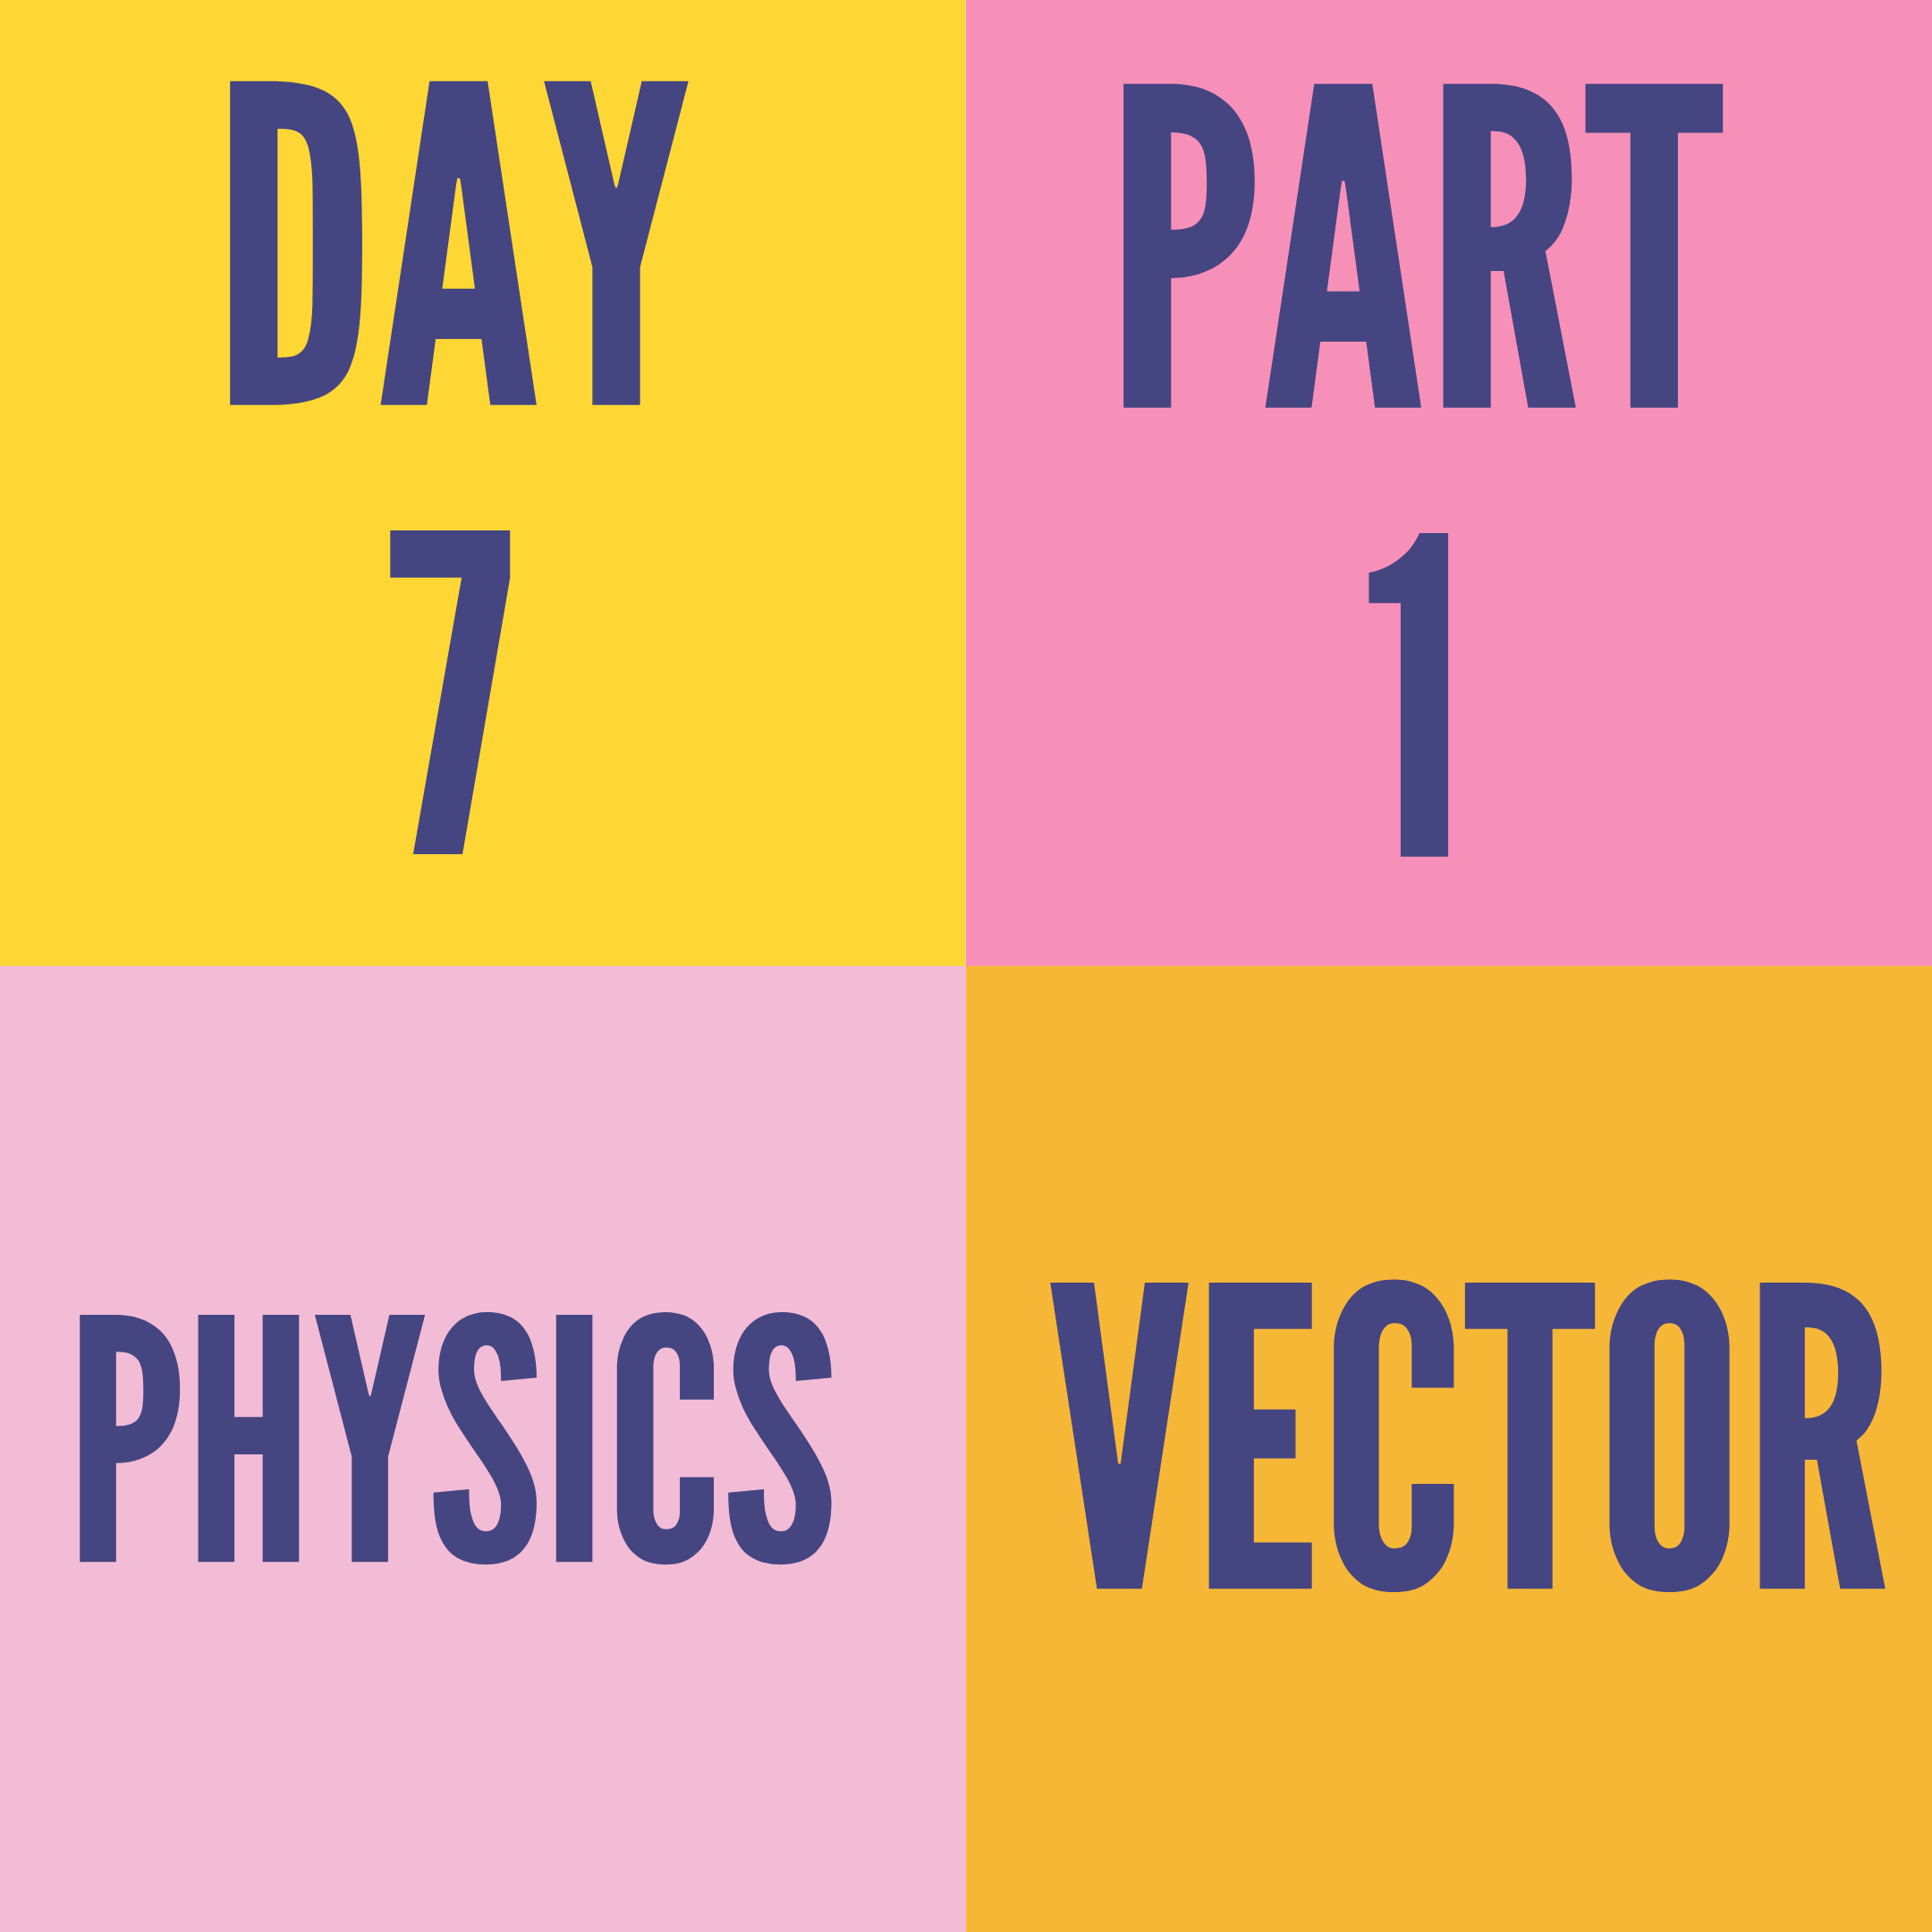 DAY-7 PART-1 VECTOR